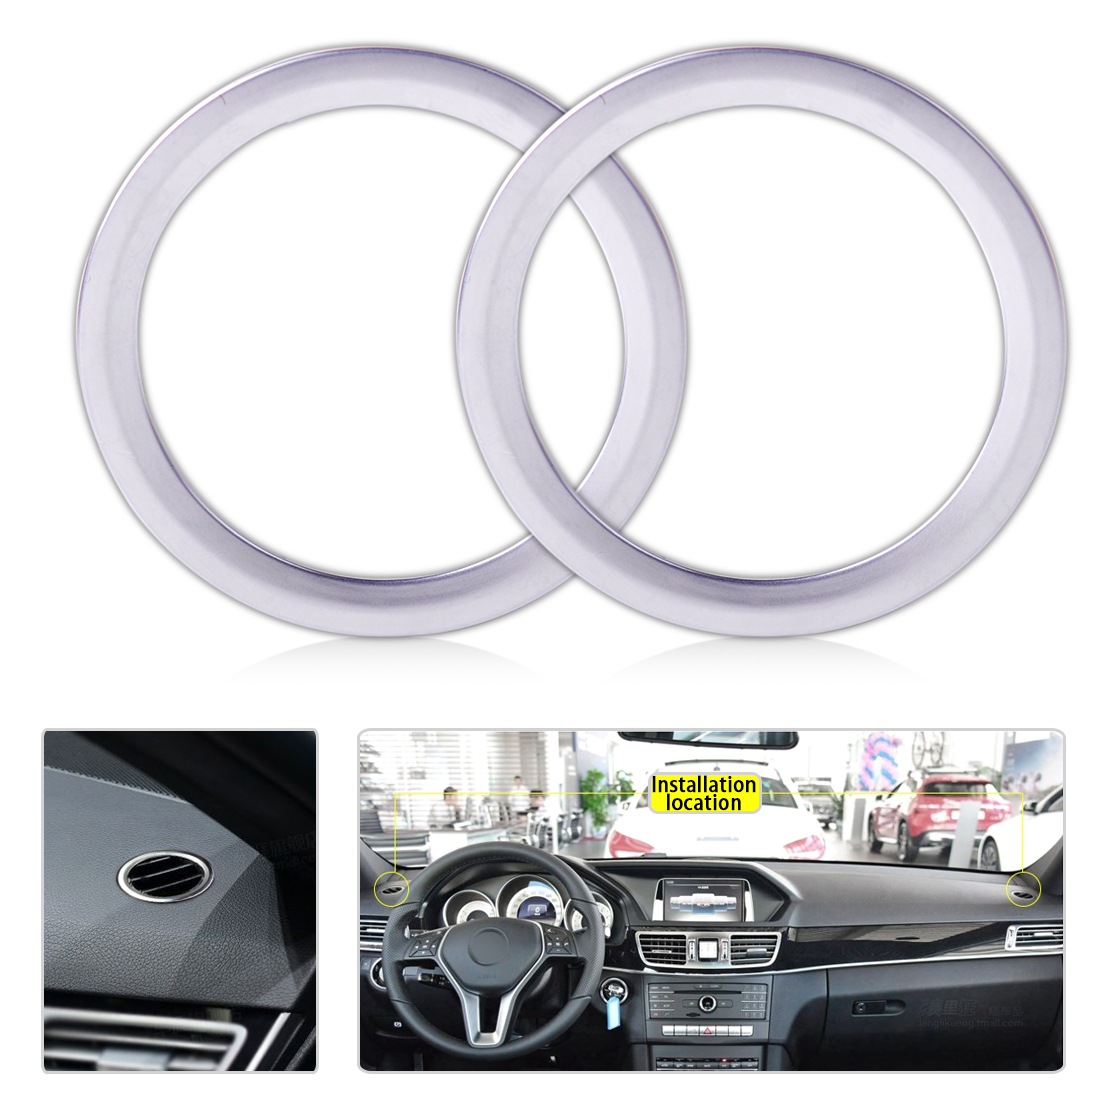 beler New Chrome Plated Interior AC Air Vent Outlet Trim Cover Ring for <font><b>Mercedes</b></font> Benz B-Class <font><b>W246</b></font> B180 <font><b>B200</b></font> 2012 2013 2014 2015 image